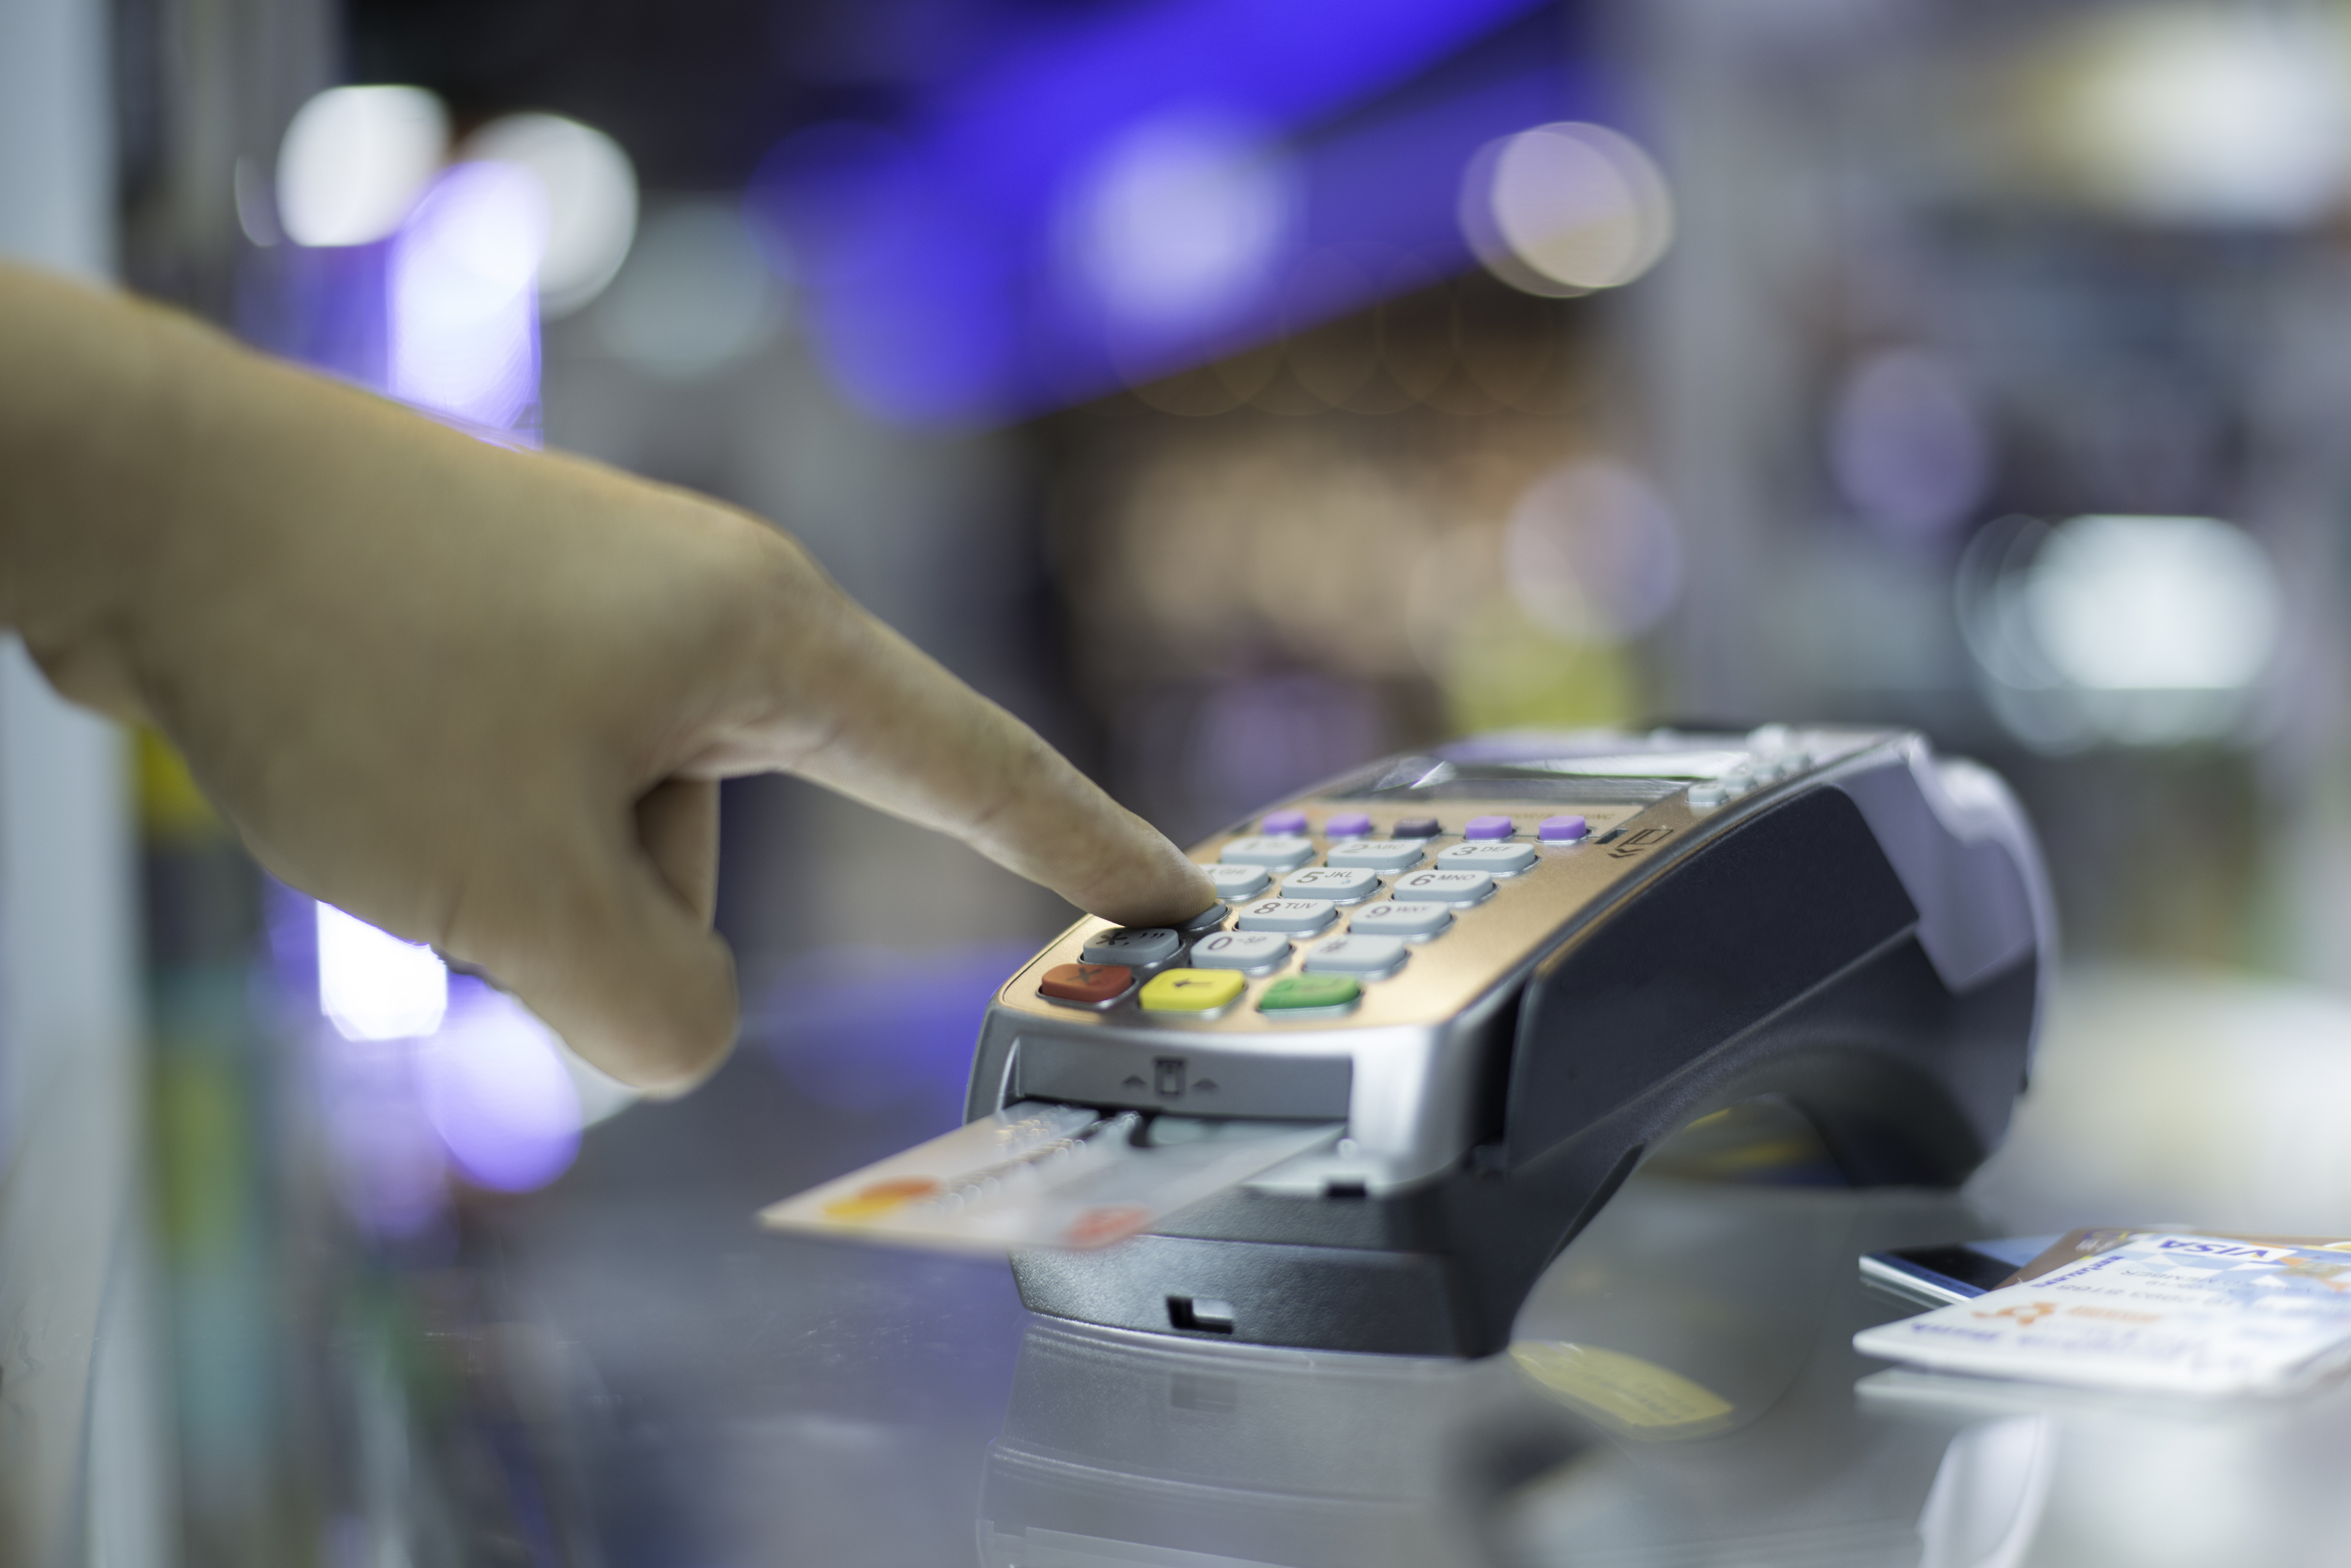 Point of sale system processing a credit card payment.